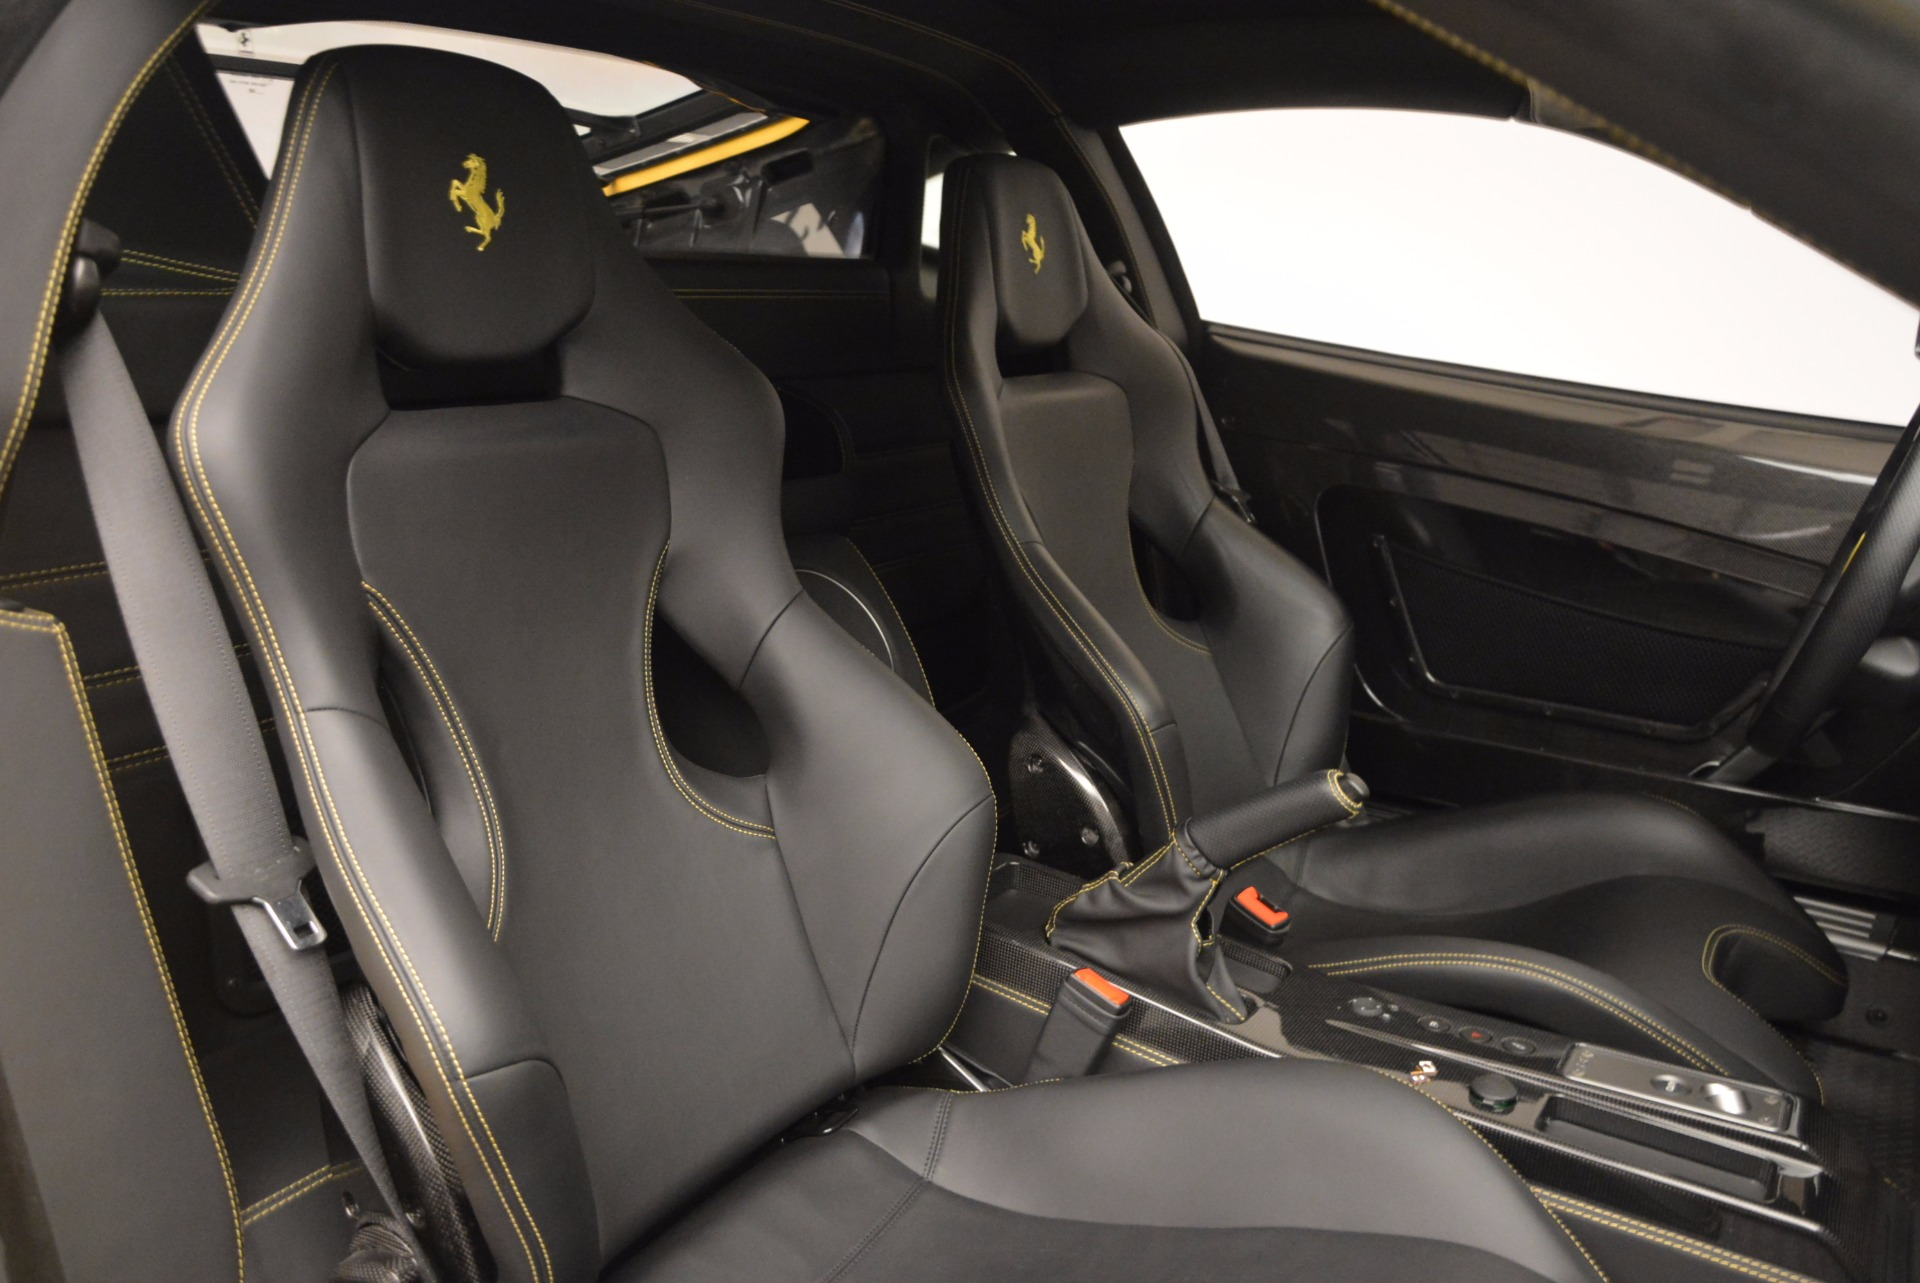 Used 2008 Ferrari F430 Scuderia For Sale In Westport, CT 1397_p19